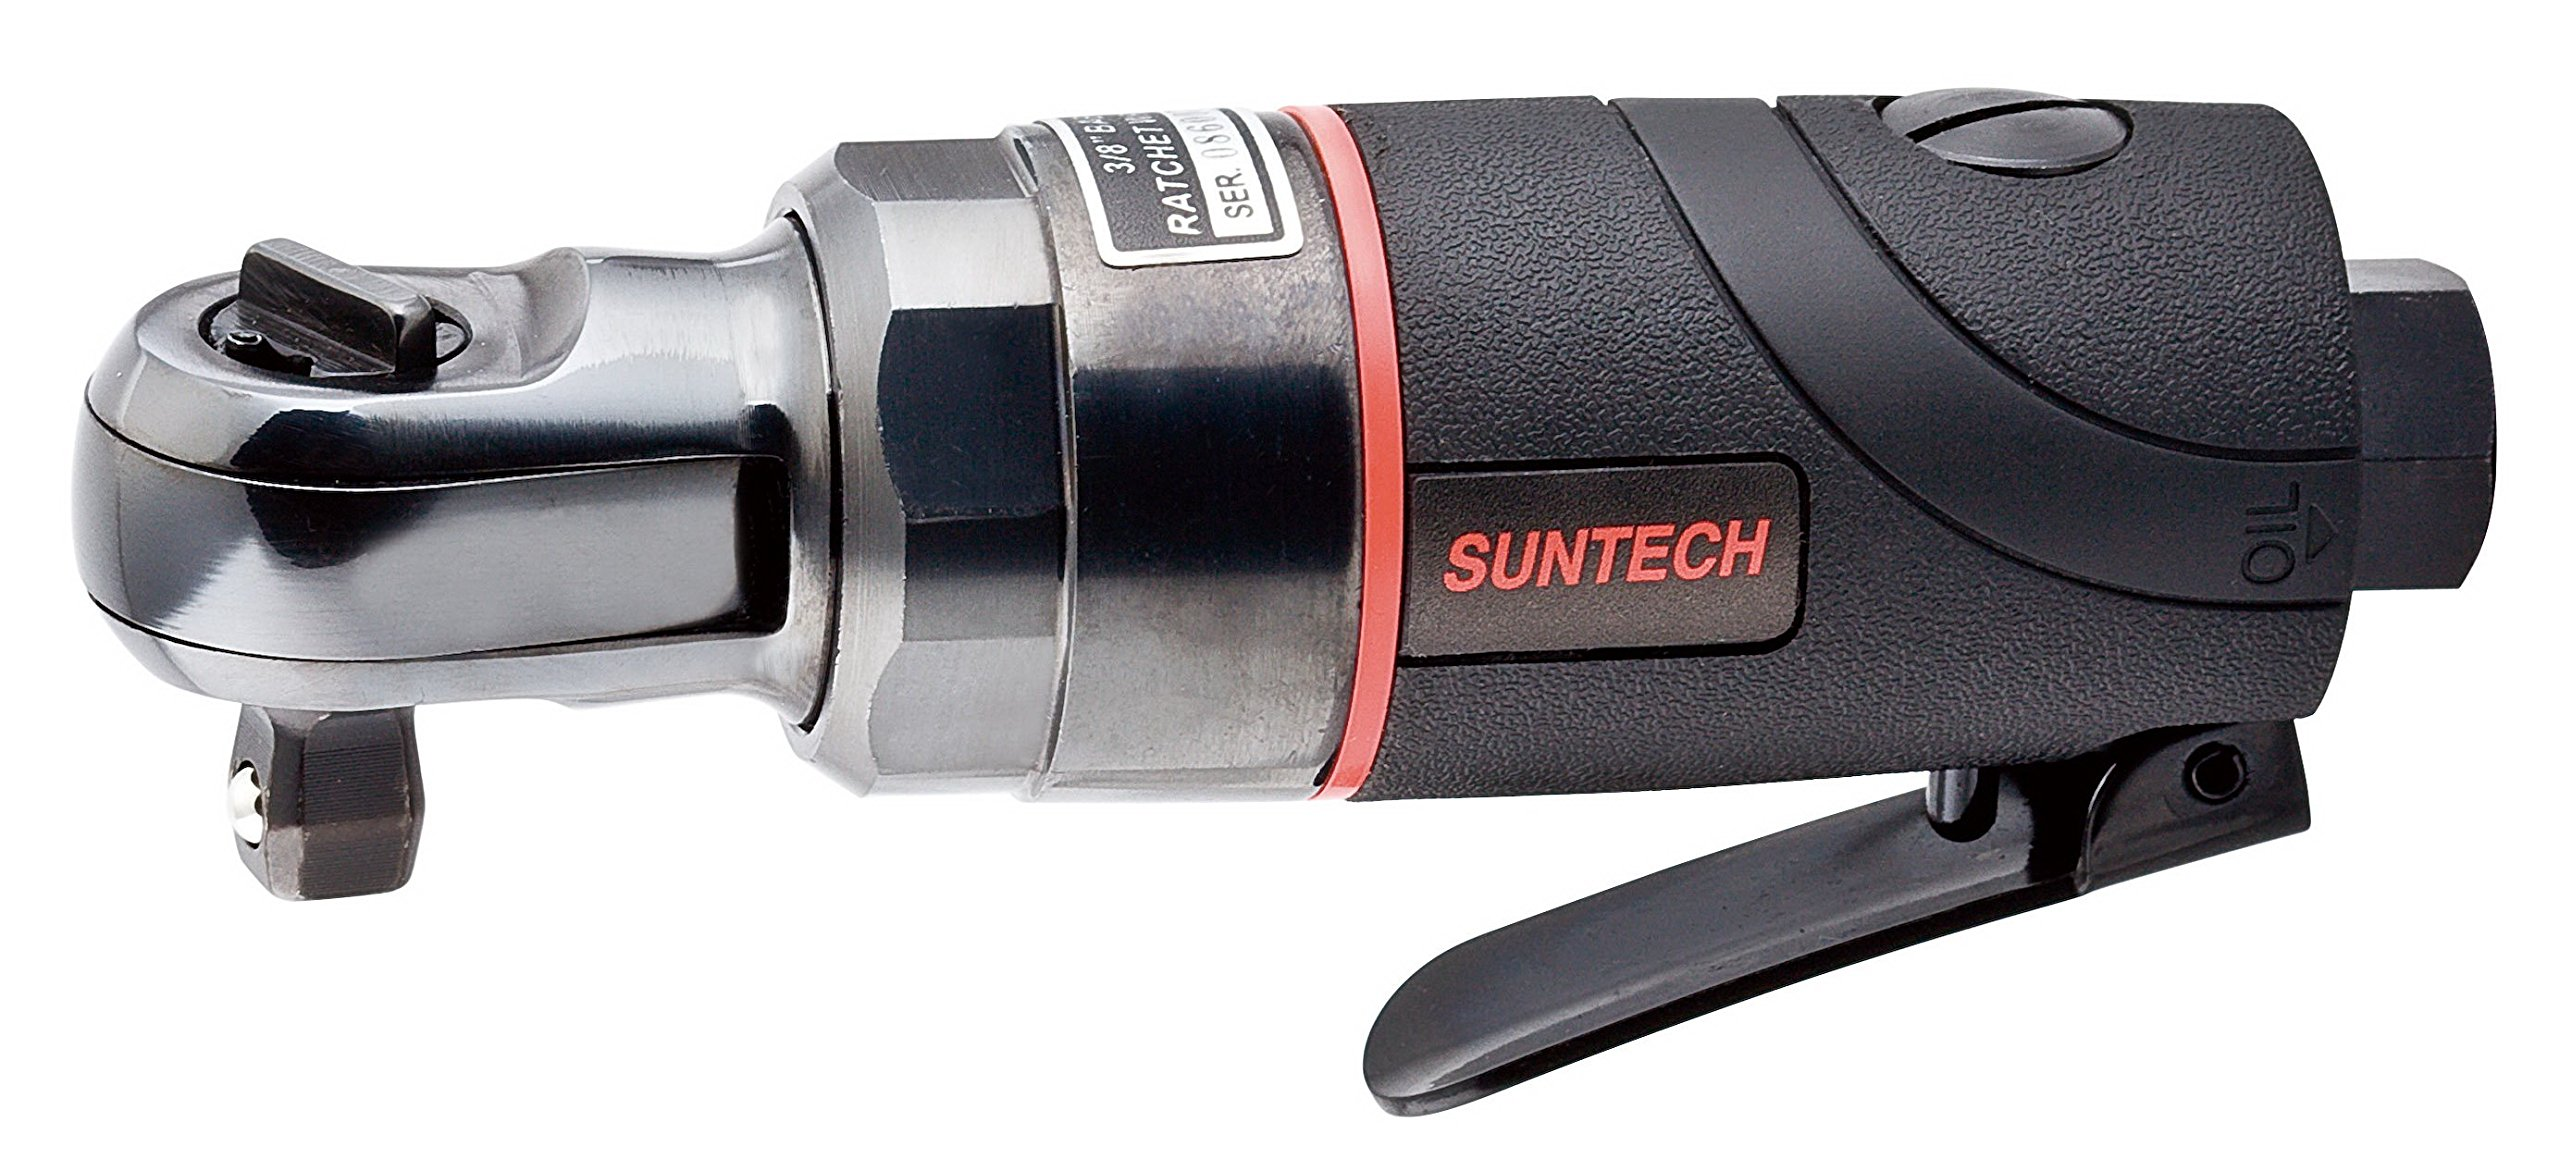 SUNTECH SM-33-3015 Air Ratchet Wrench with Composite Type, Black, 3/8''